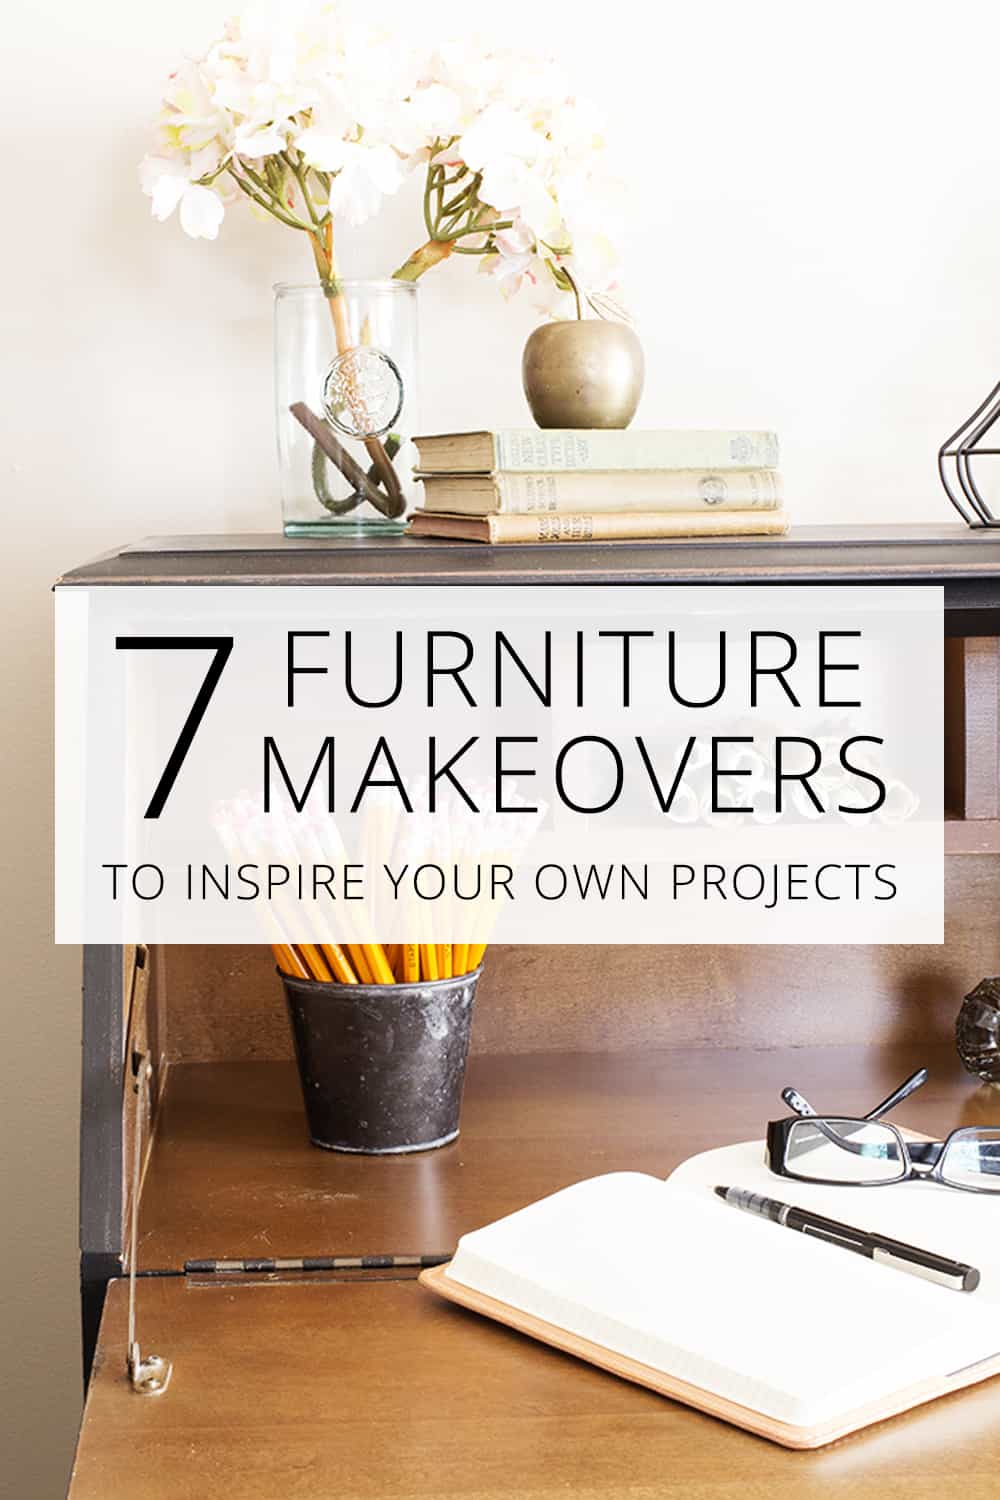 7 furniture makeovers to inspire your own projects